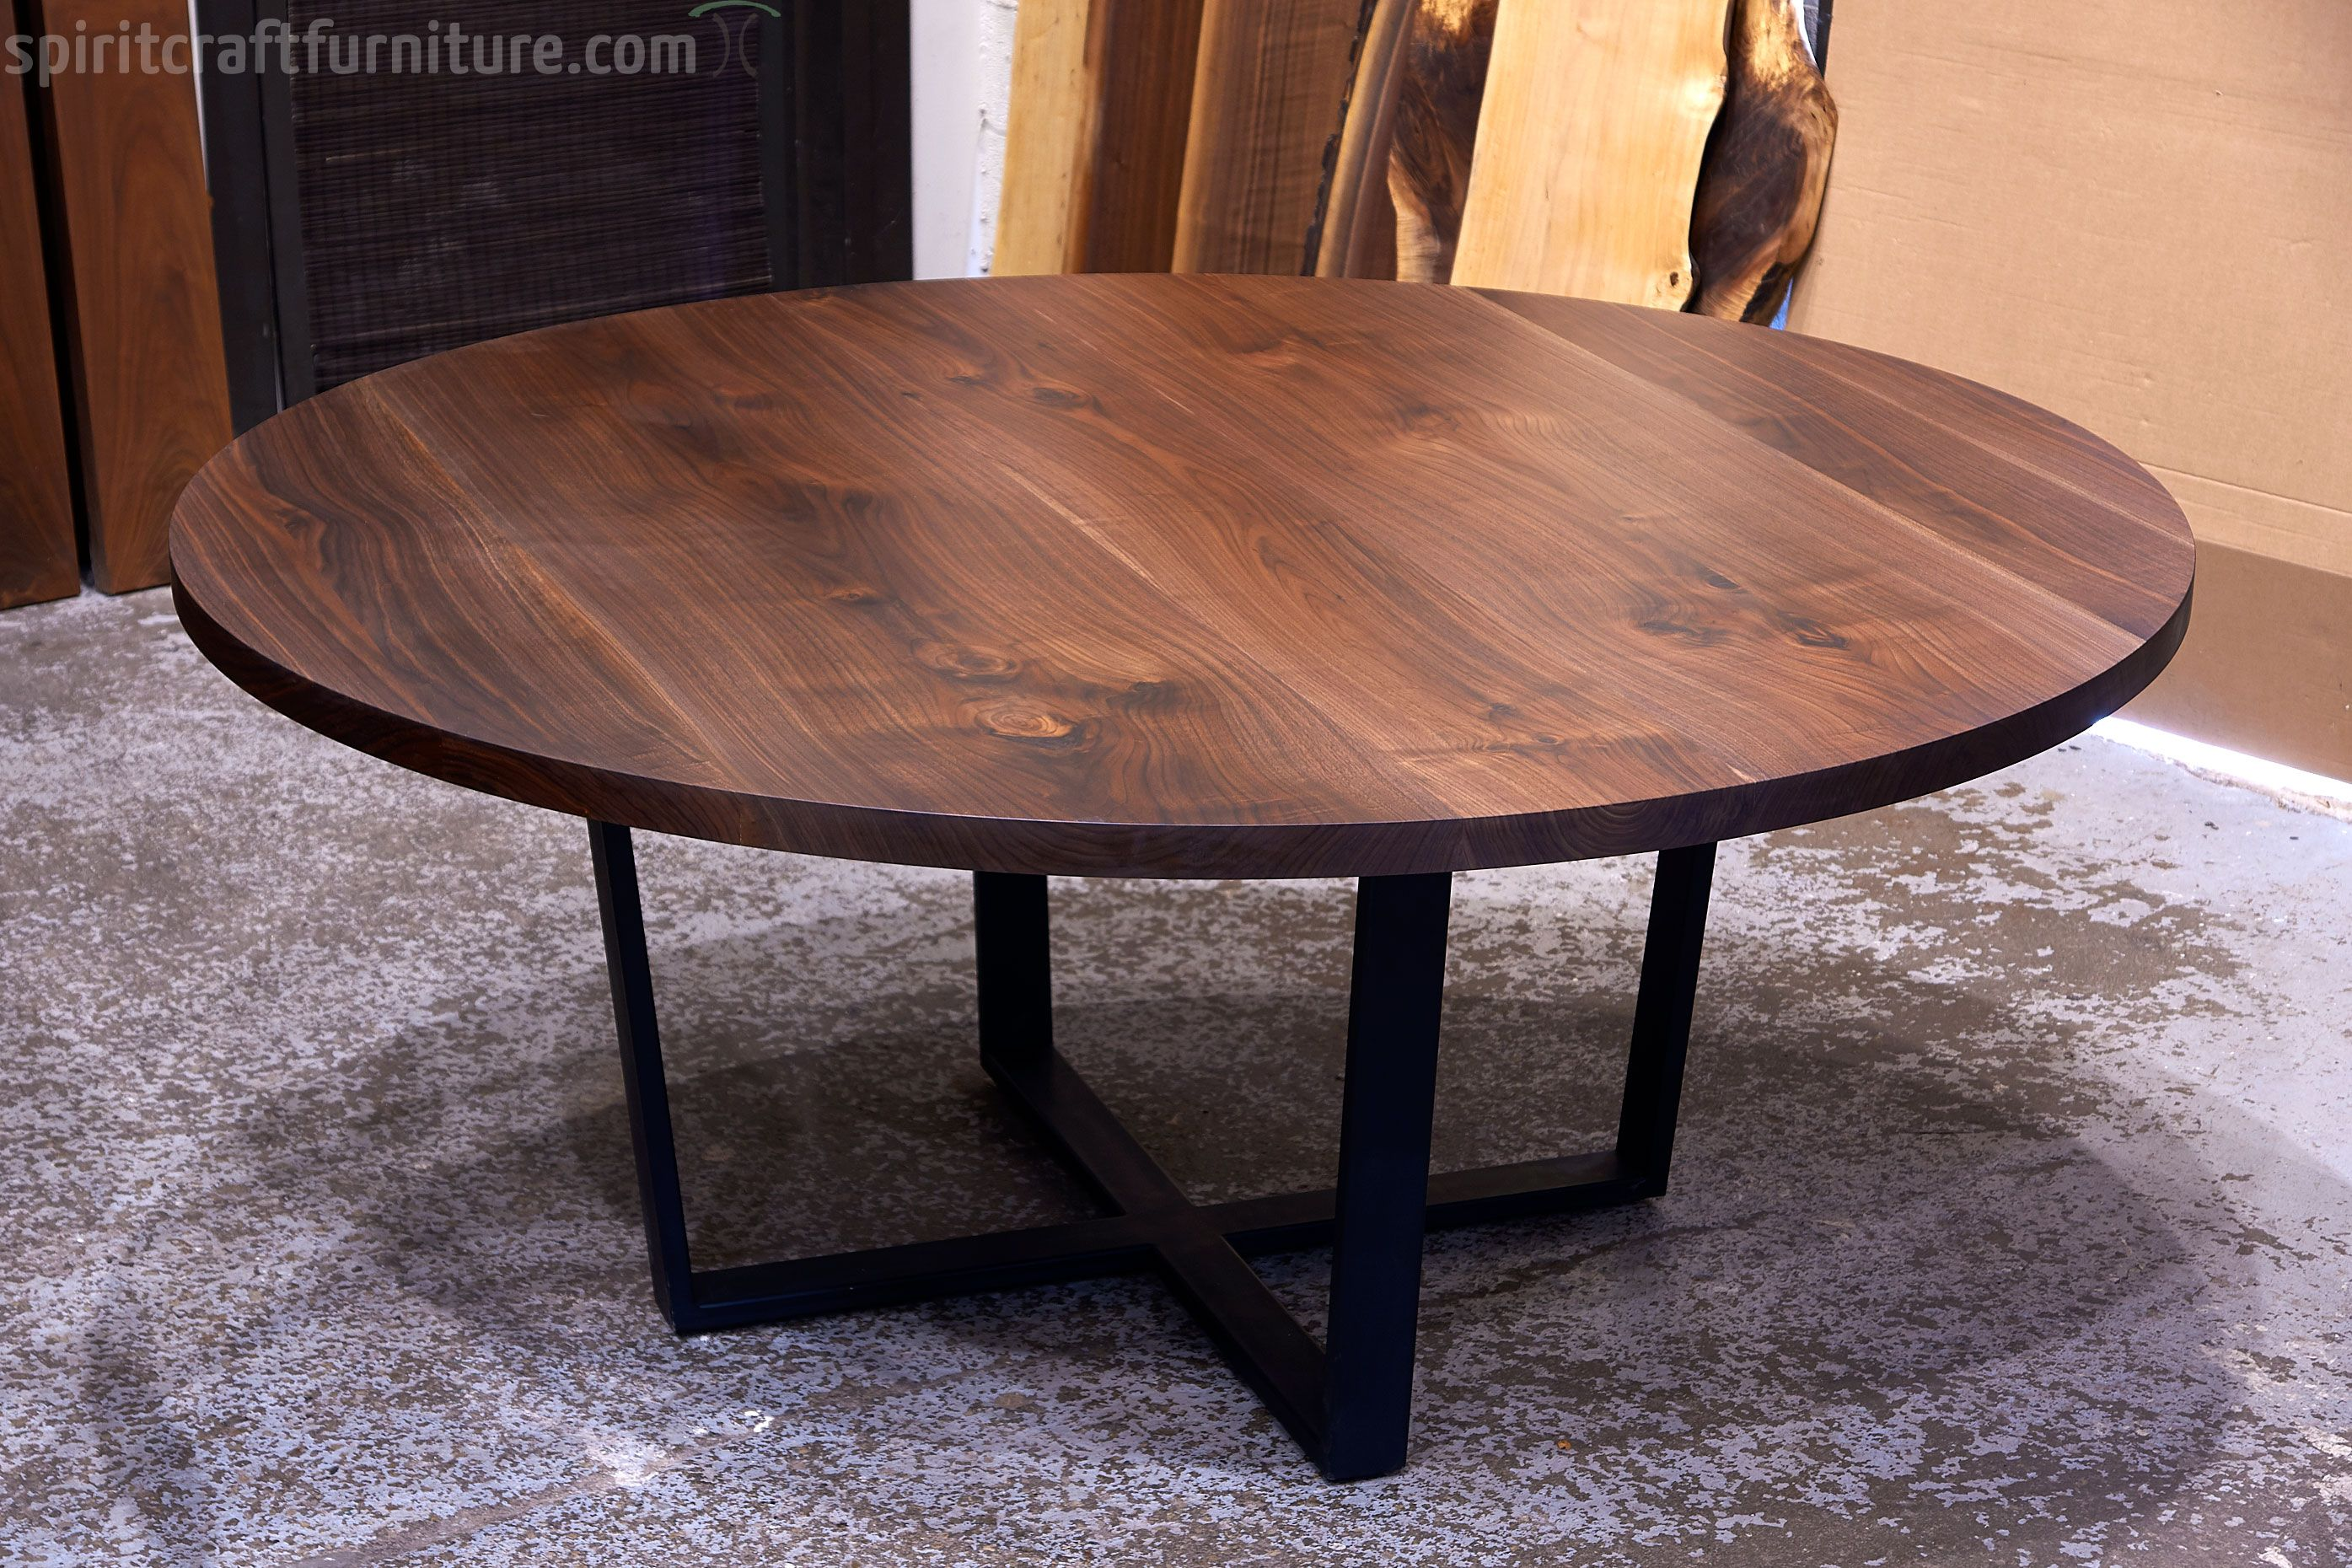 Custom Conference Tables With Leg And Grommet Options Handcrafted From Kiln Dried Solid Hardwood In Live Edge Dining Table Hardwood Table Walnut Dining Table